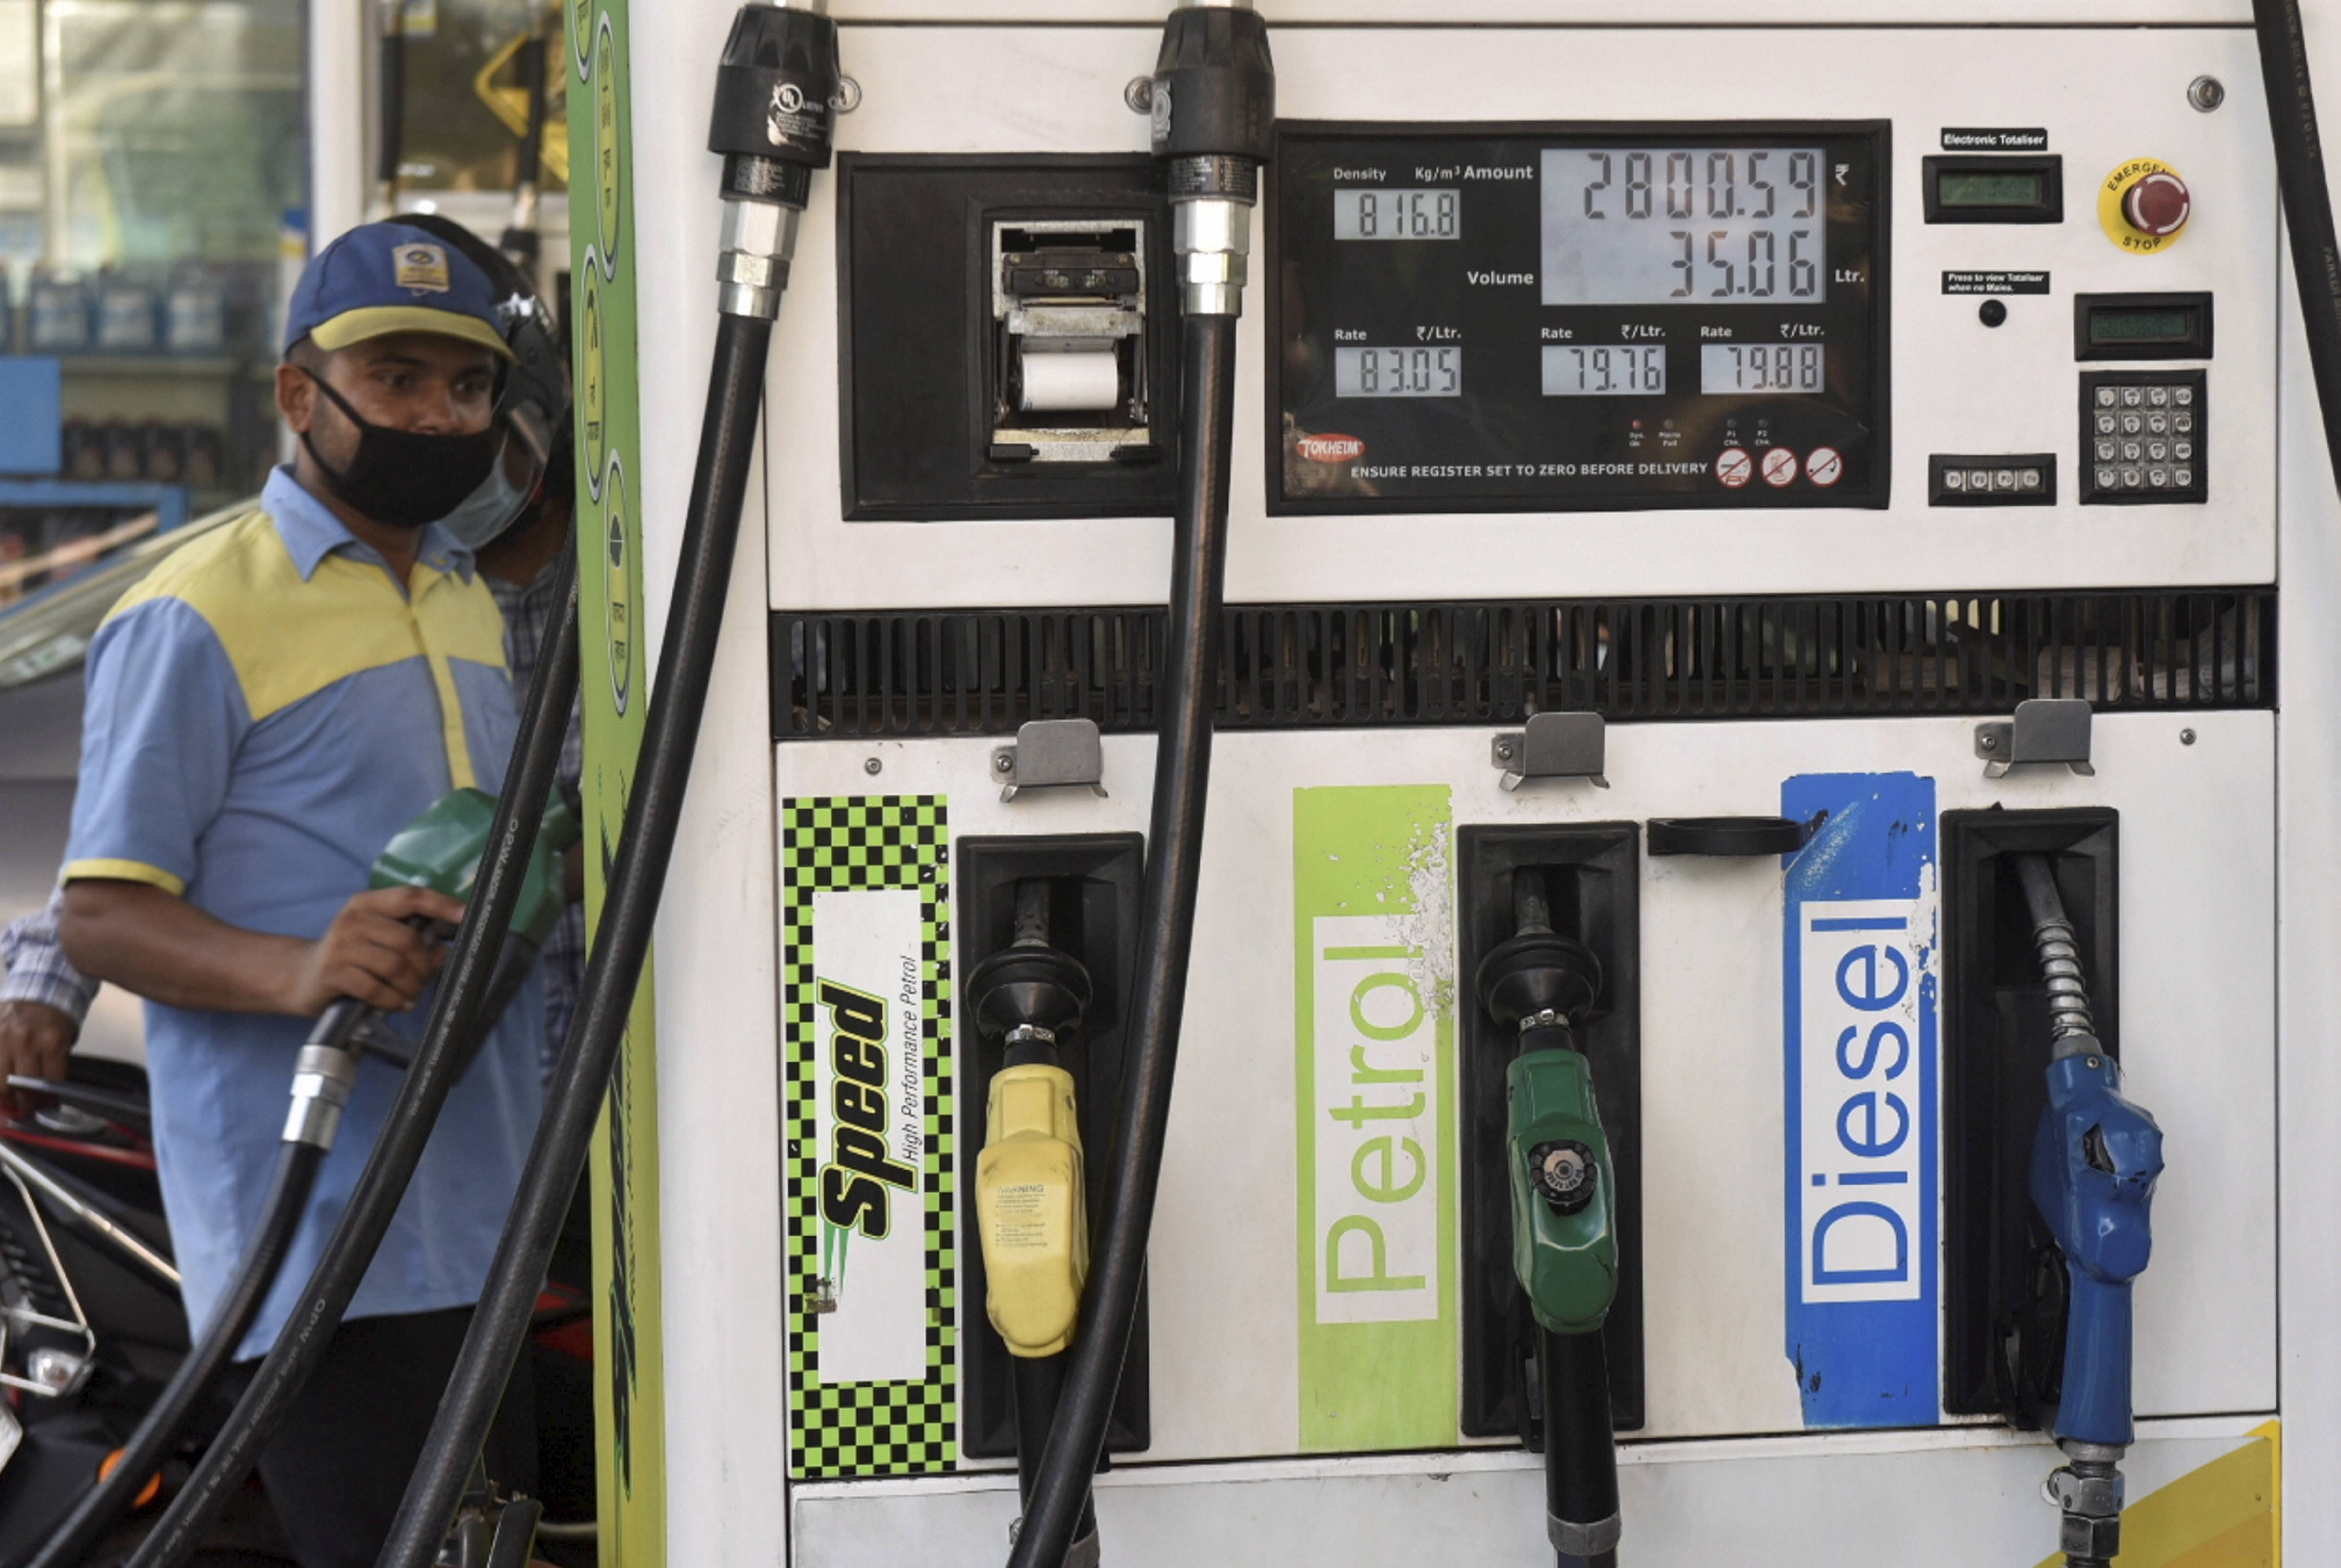 An employee works at a fuel station in New Delhi on June 24. Diesel will now cost more than petrol in the city after its price was hiked by 48 paise